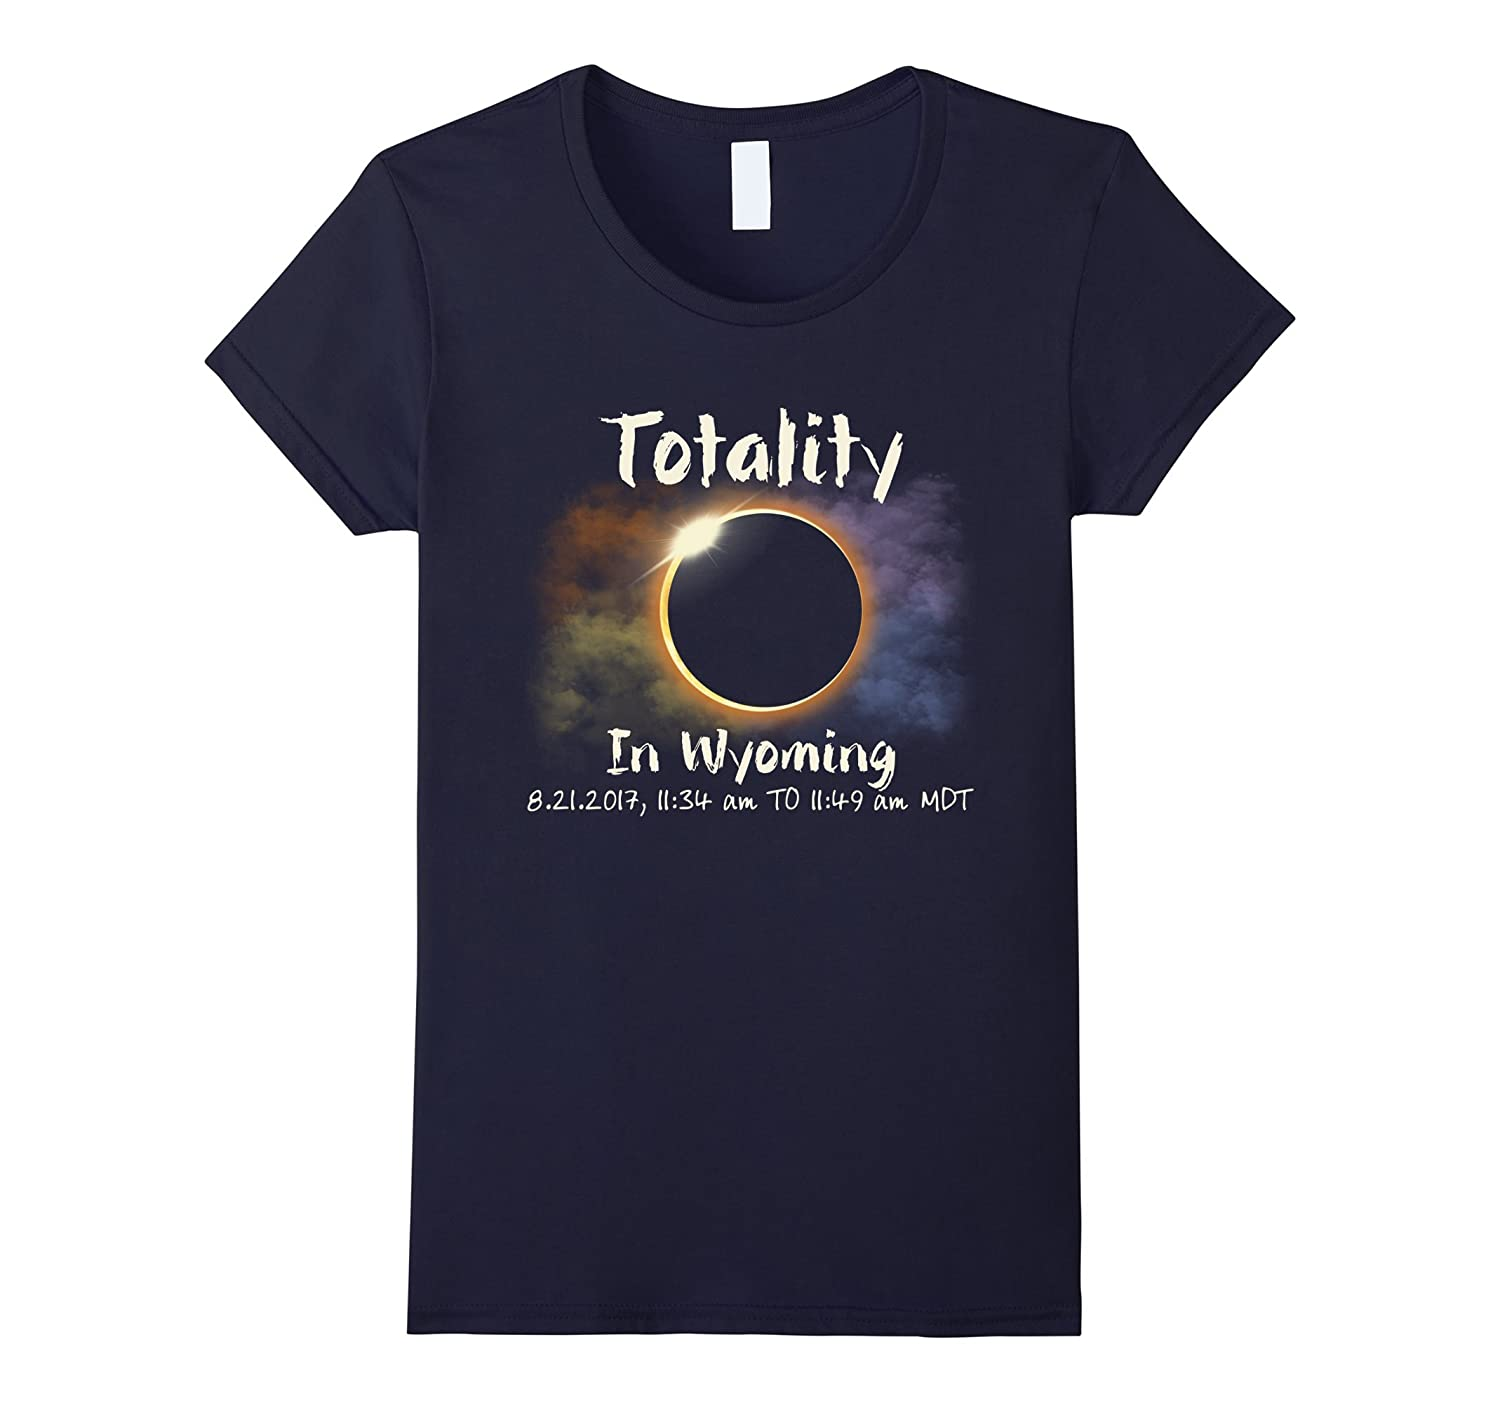 Totality In Wyoming T-shirt Total Solar Eclipse August 21